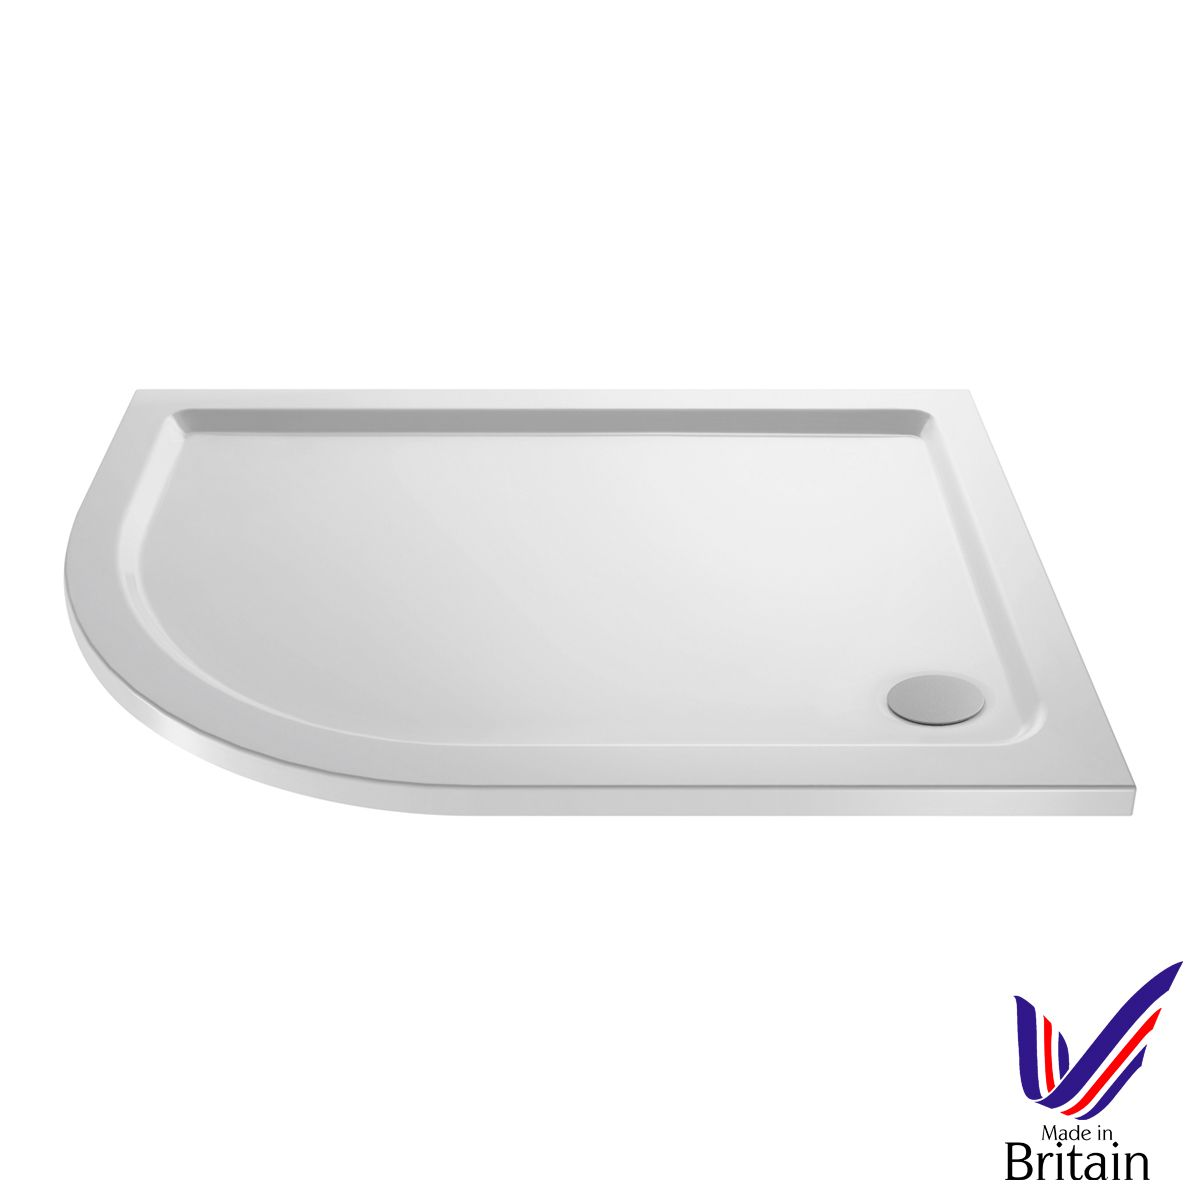 1200 x 800 Shower Tray Offset Quadrant Low Profile Left Hand by Pearlstone